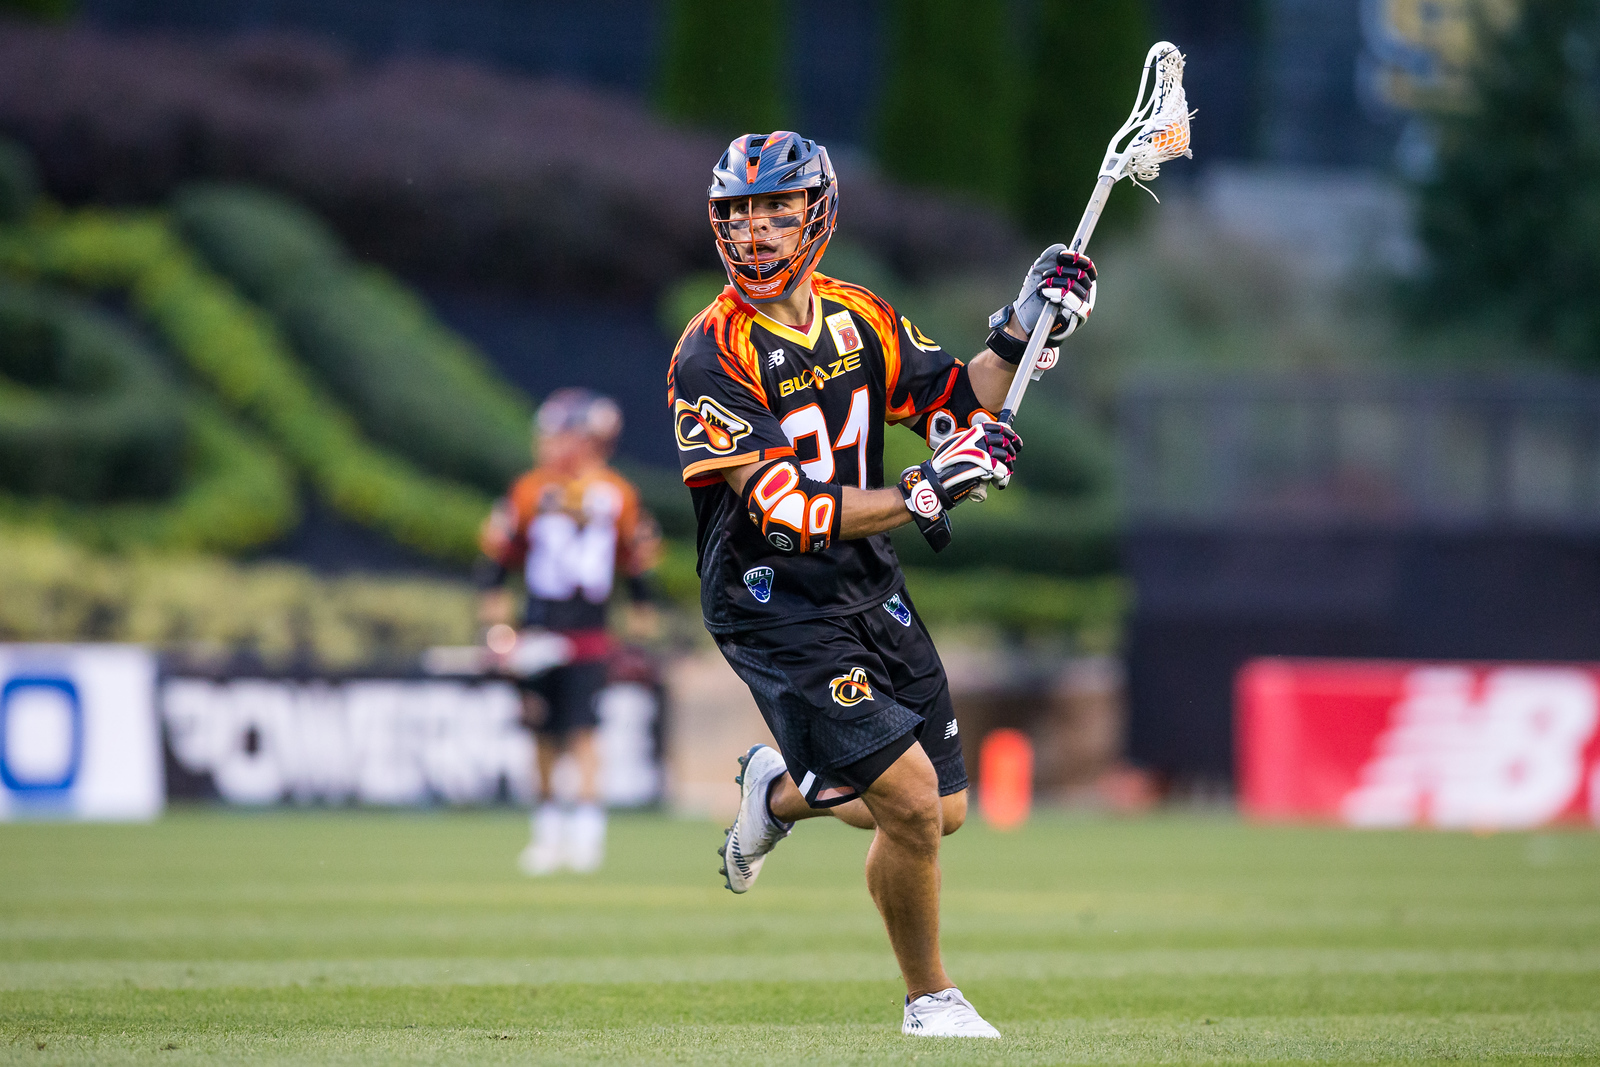 MLL: Florida Launch @ Atlanta Blaze